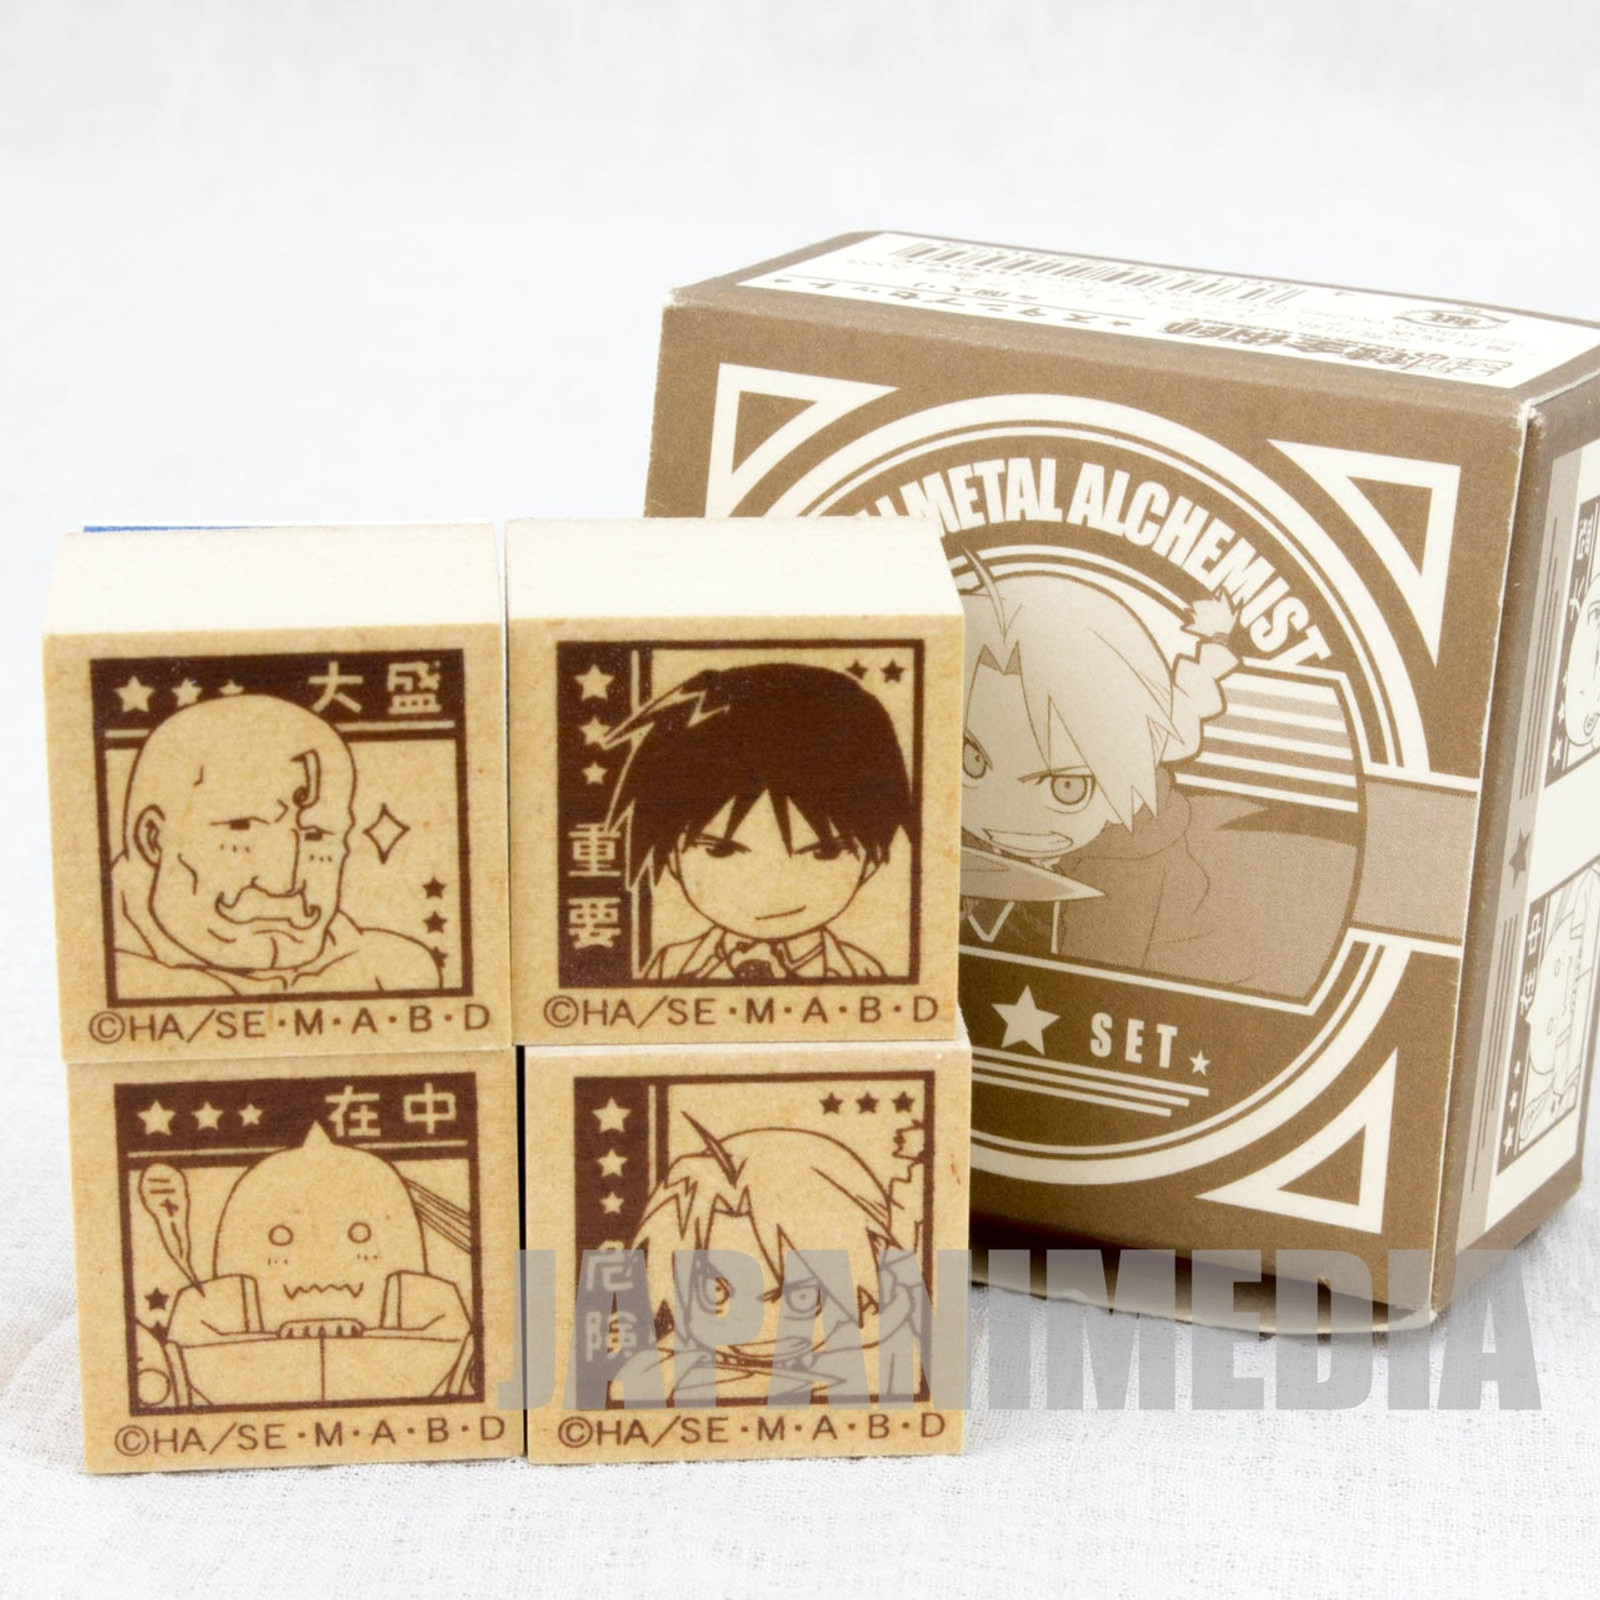 FullMetal Alchemist Mini Stamp 4pc Set Movic JAPAN ANIME